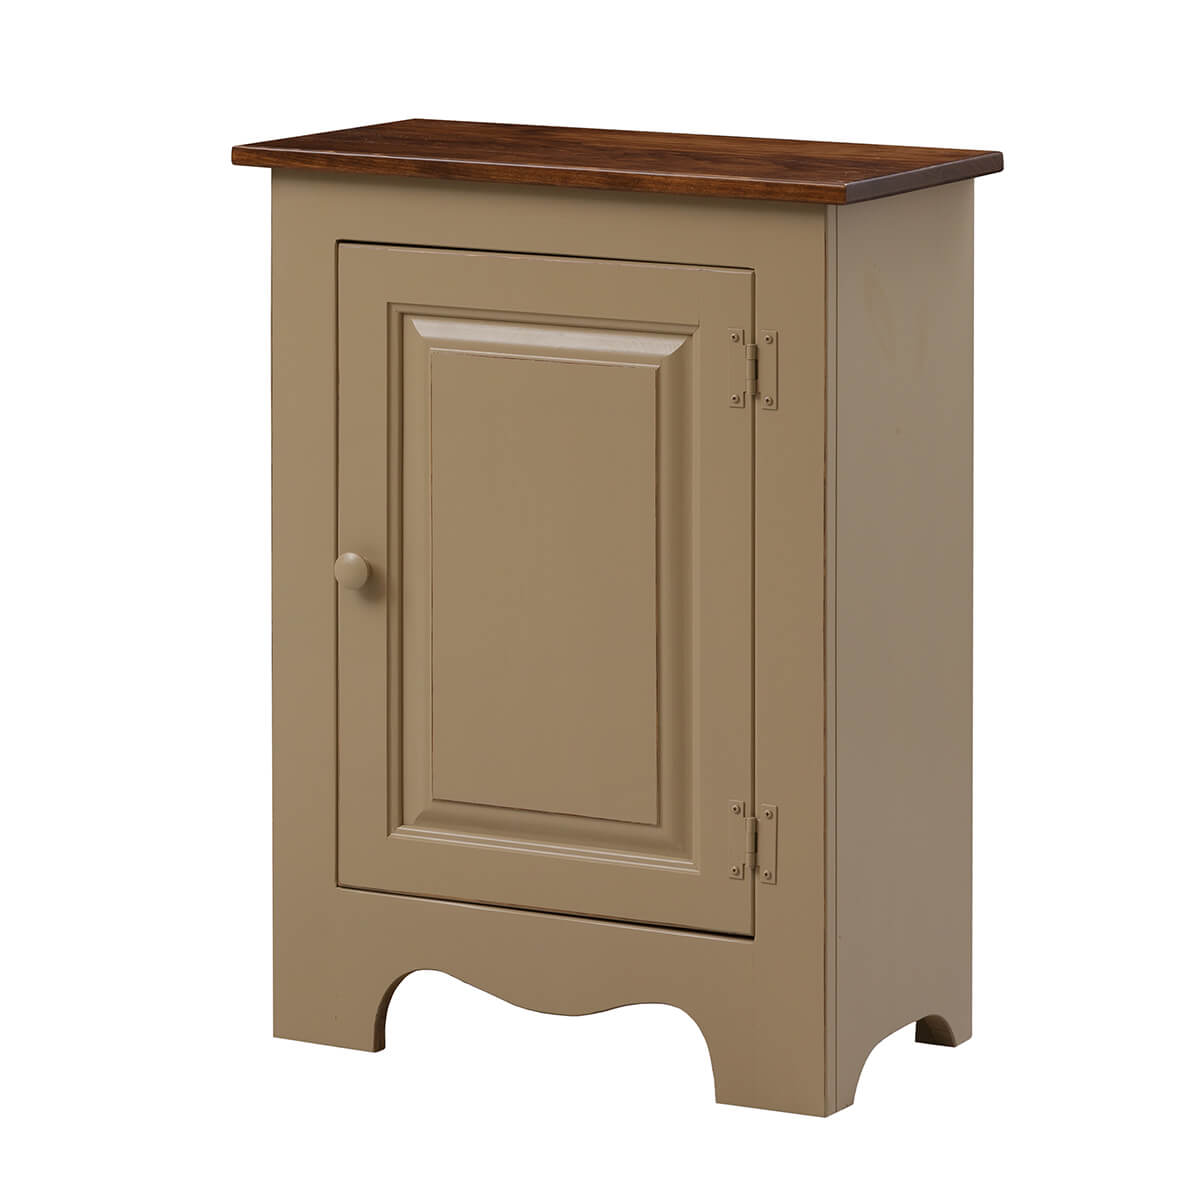 Cabinets · Office Furniture Chairs